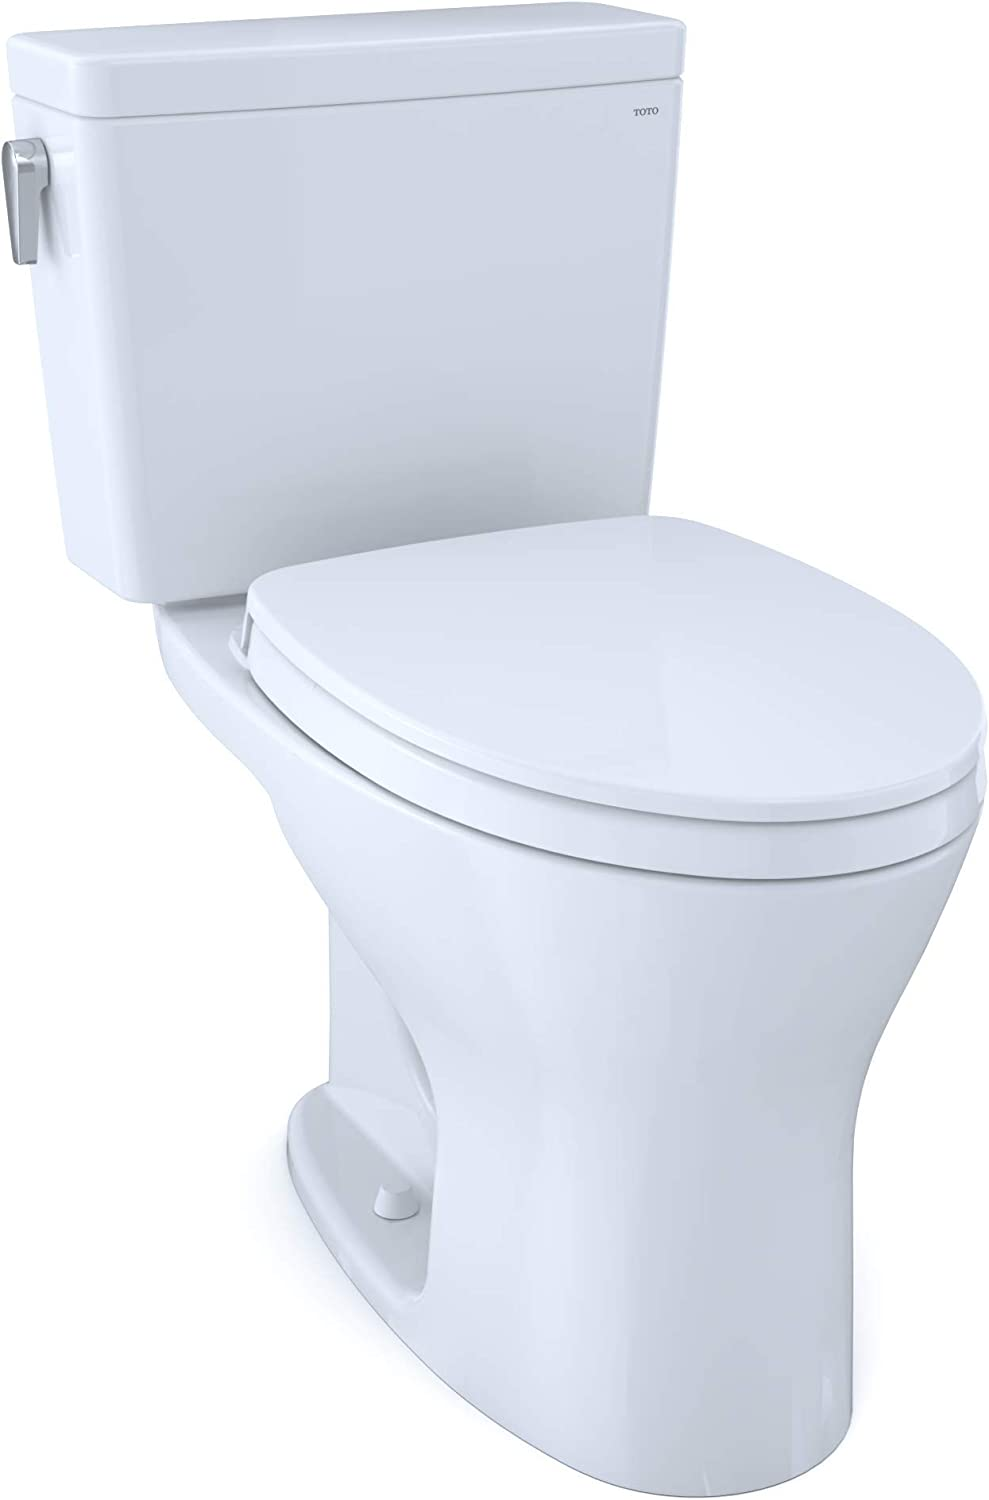 Toto Ms746124csmg 01 Drake Two Piece Elongated Dual Flush 1 6 And 0 8 Gpf Dynamax Tornado Flush Toilet With Cefiontect And Softclose Seat Washlet Ready Cotton White